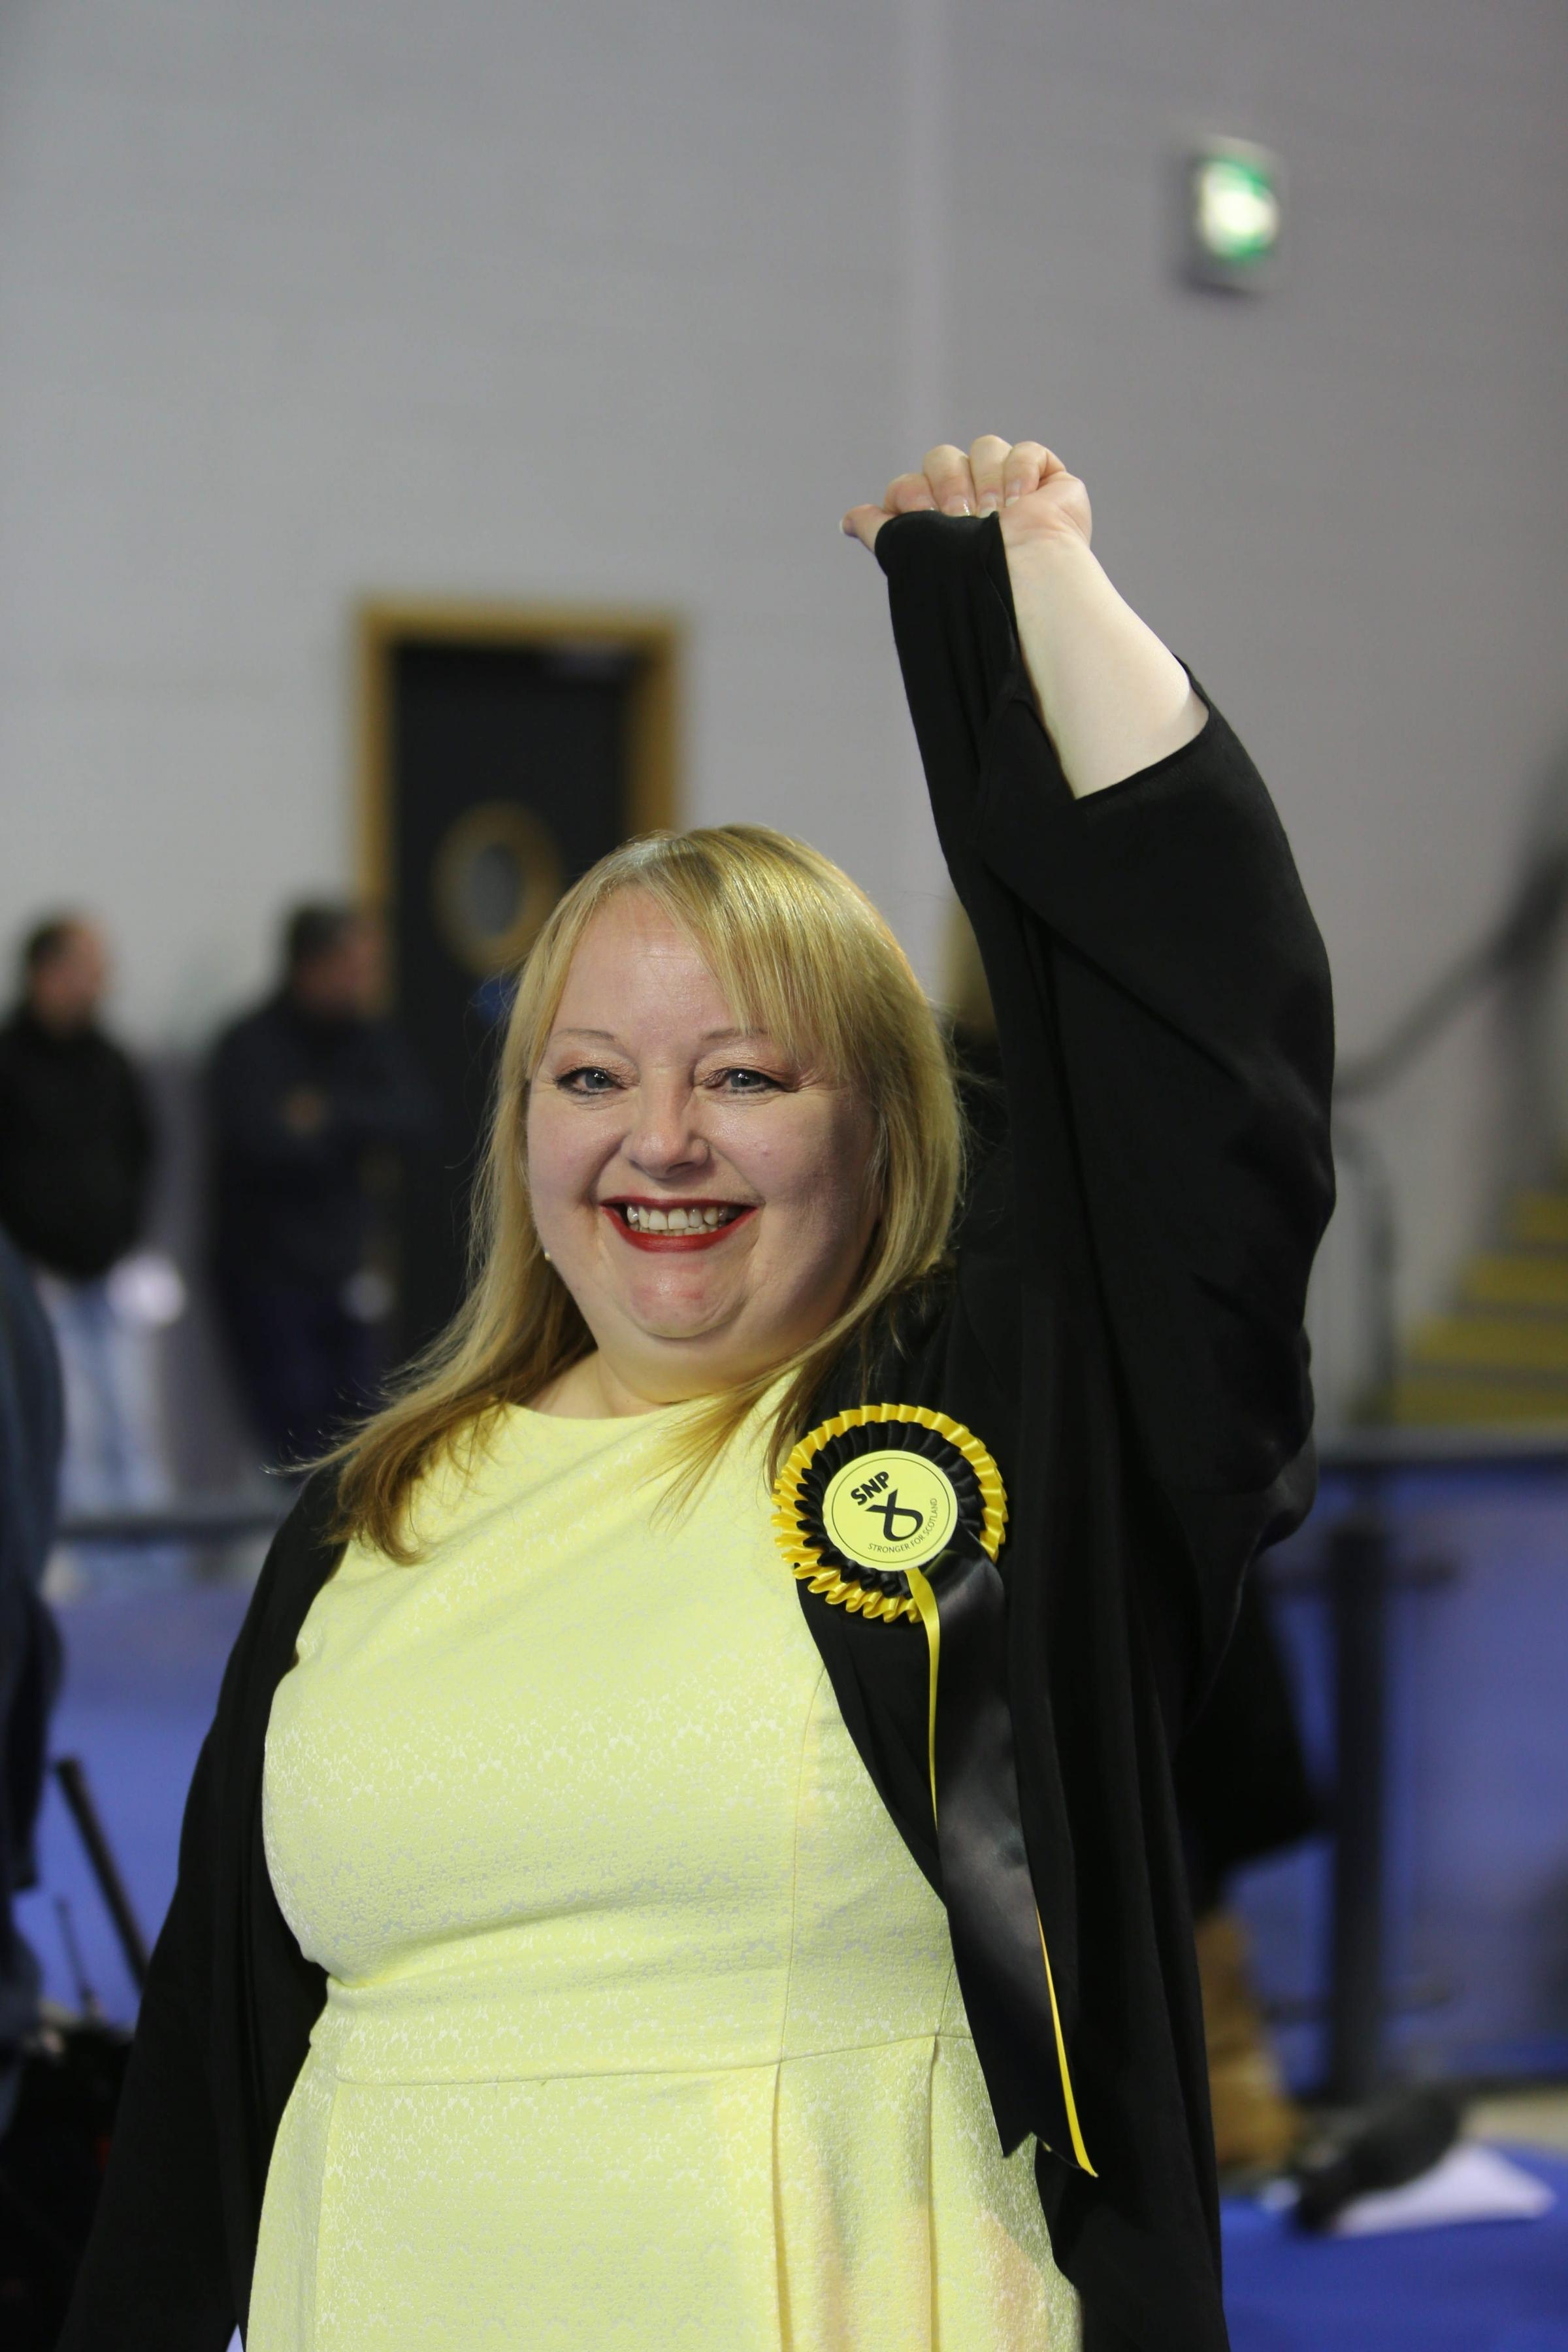 SNP MP gives office job to boyfriend